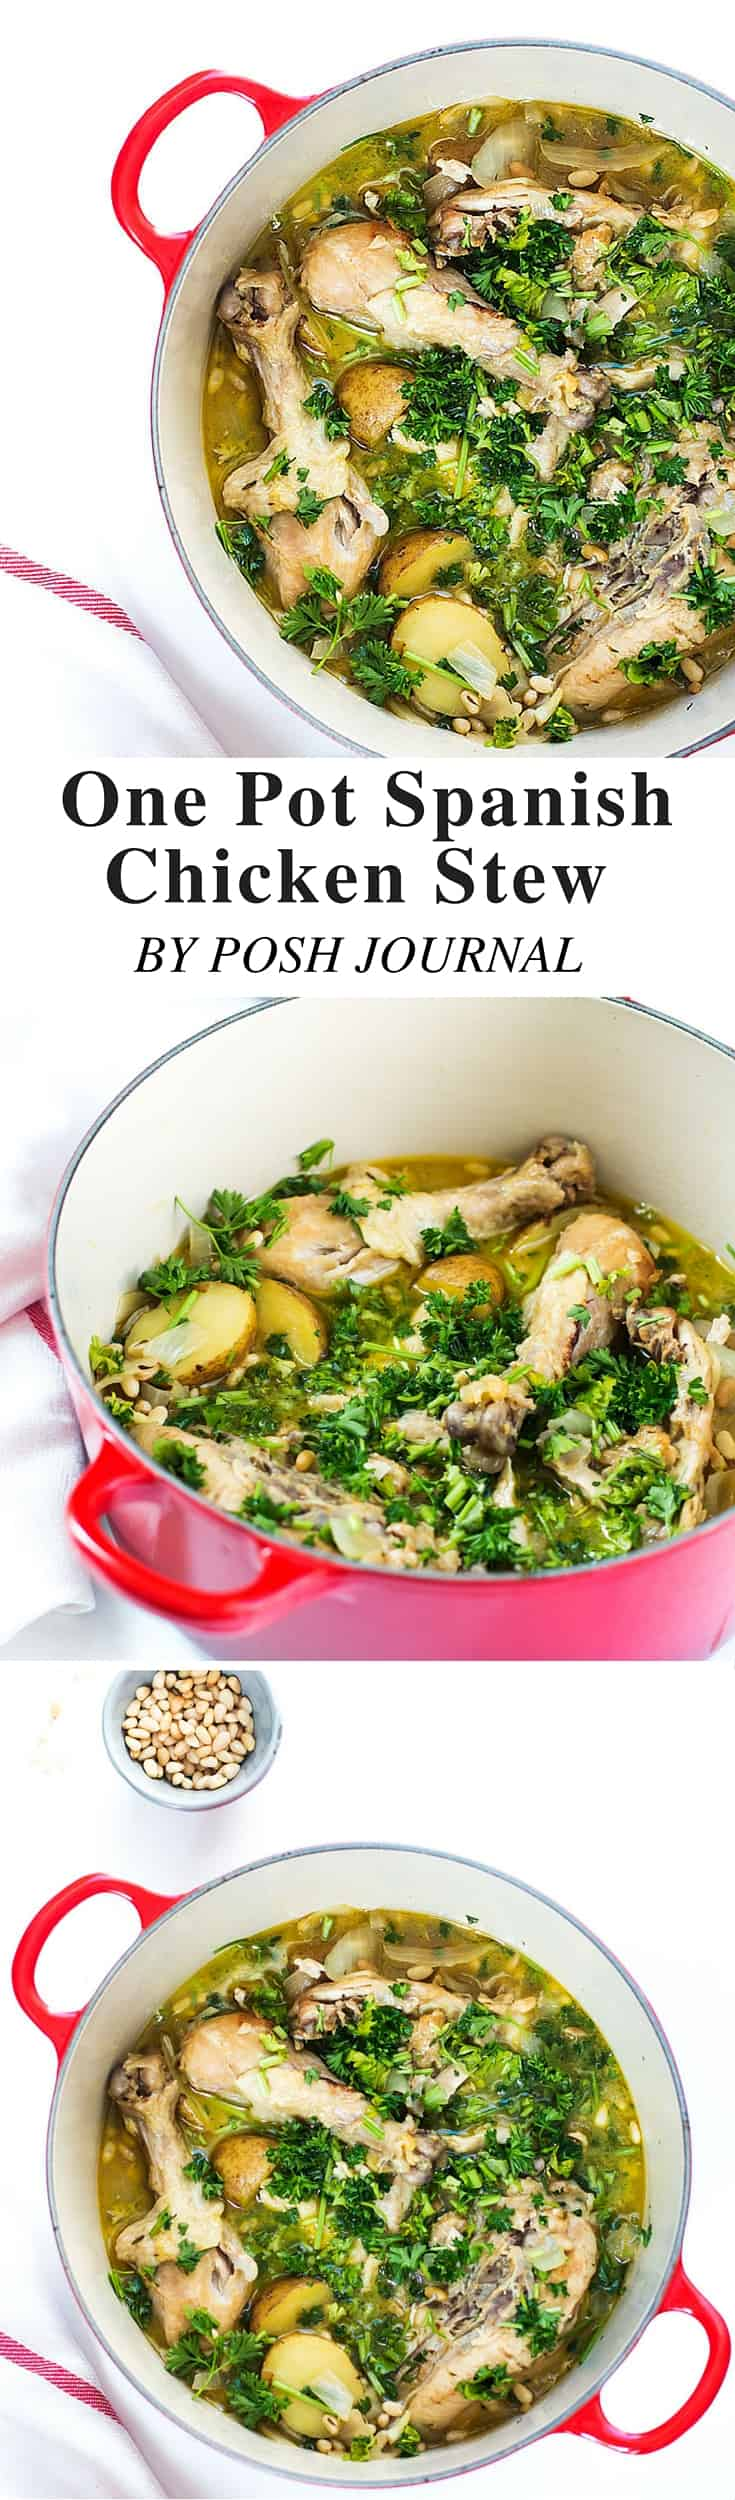 One Pot Spanish Chicken Stew Recipe-2